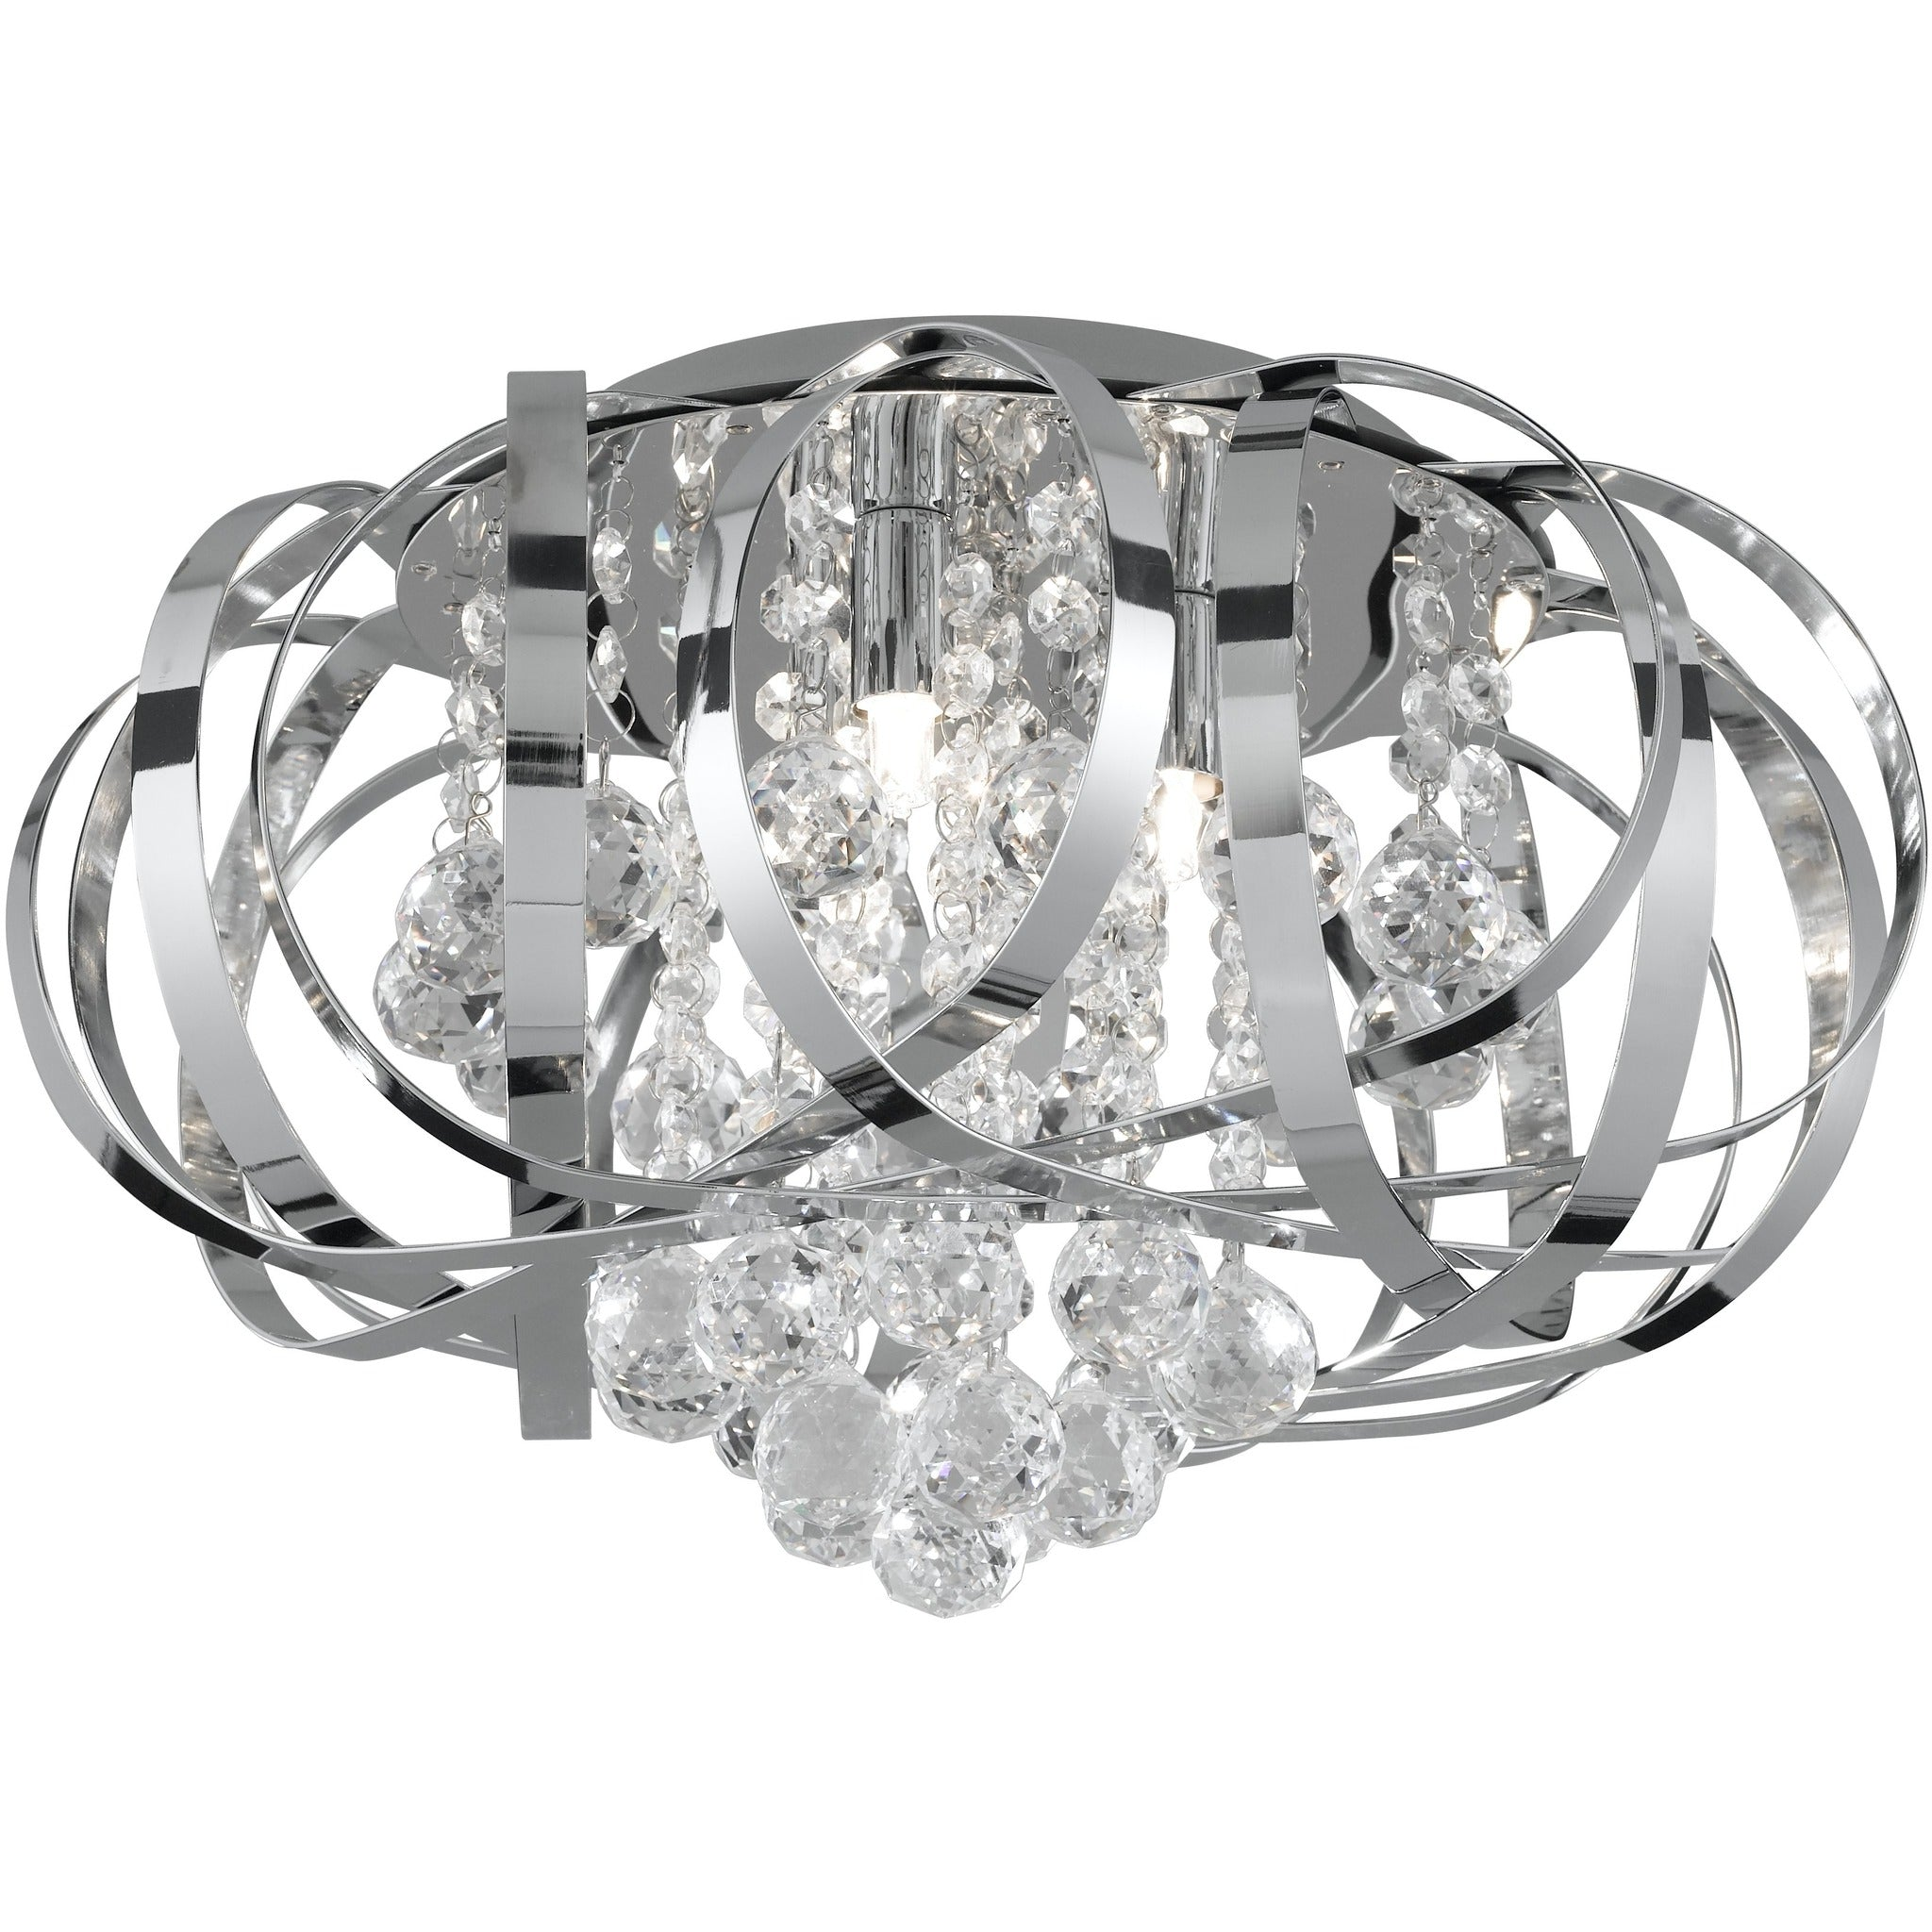 uk light shack chrome crystal for ch chandelier sale therese marie buy impex ring chandeliers online